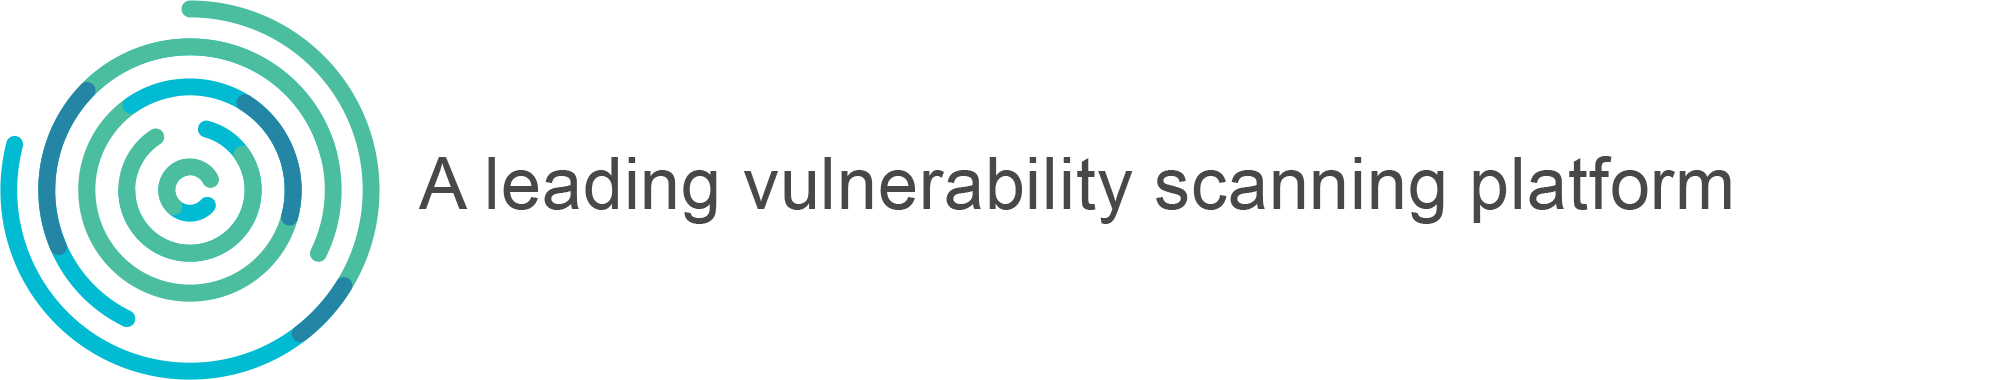 Vulnerability Scanner Blog Header